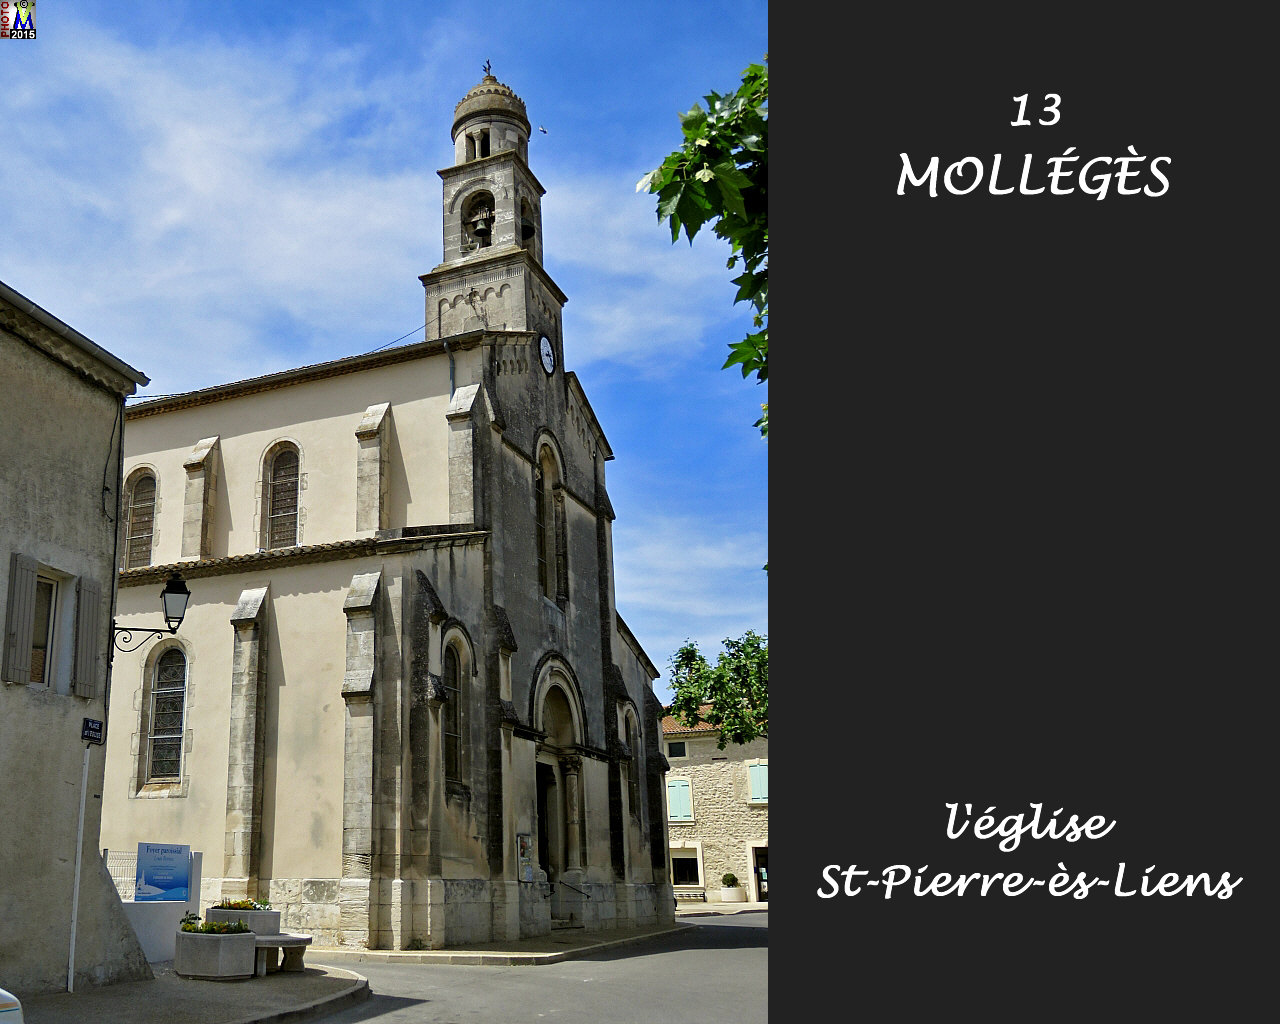 13MOLLEGES_eglise_100.jpg